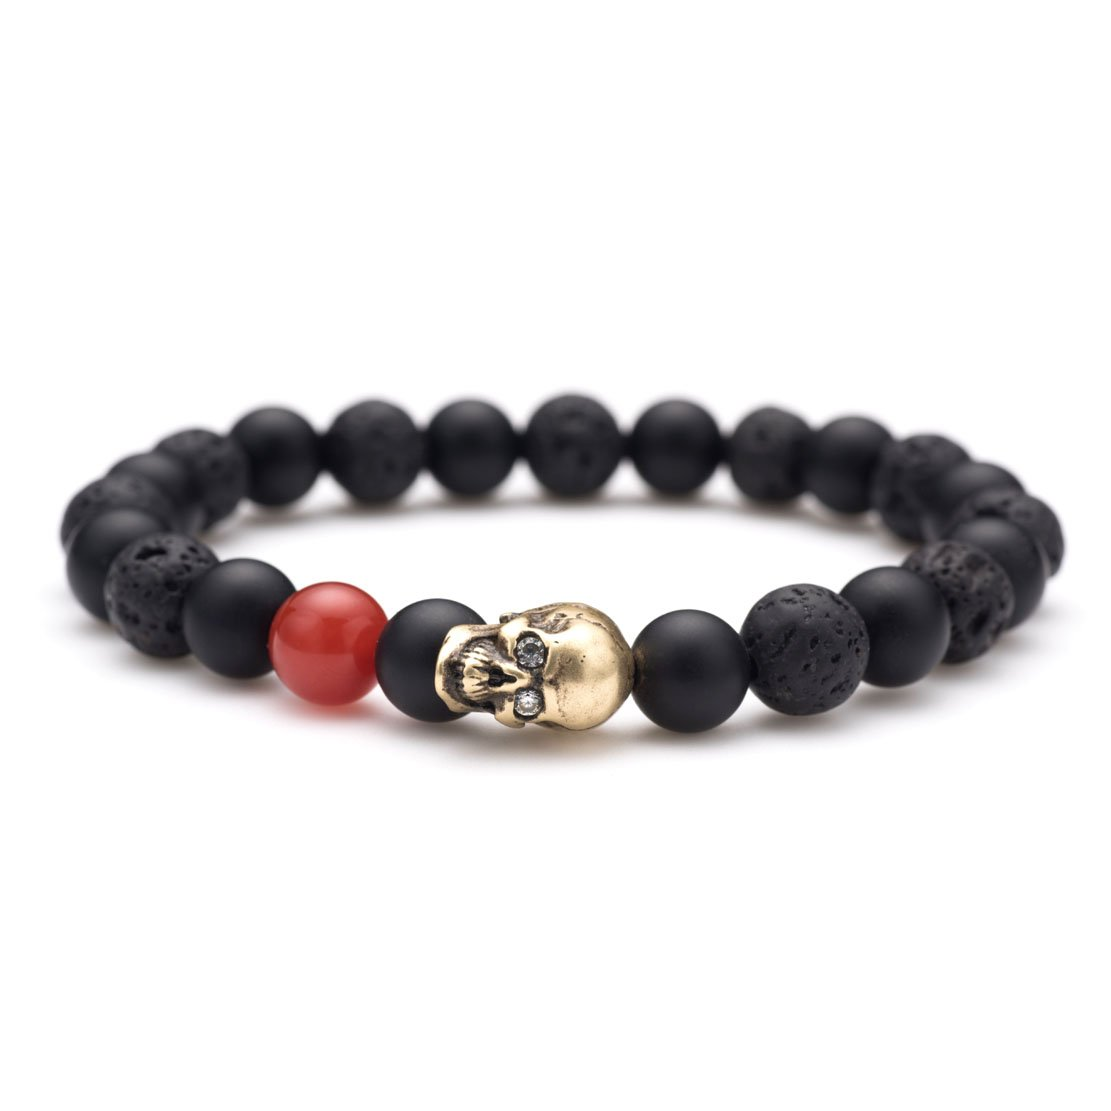 Karseer Black Matte Onyx and Lava Energy Stone Beaded Stretch Bracelet, Retro Bronze Skull Gothic Punk Charm with Red Agate Emphasized Personality Bangle Jewelry Birthday Gift Unisex 7''